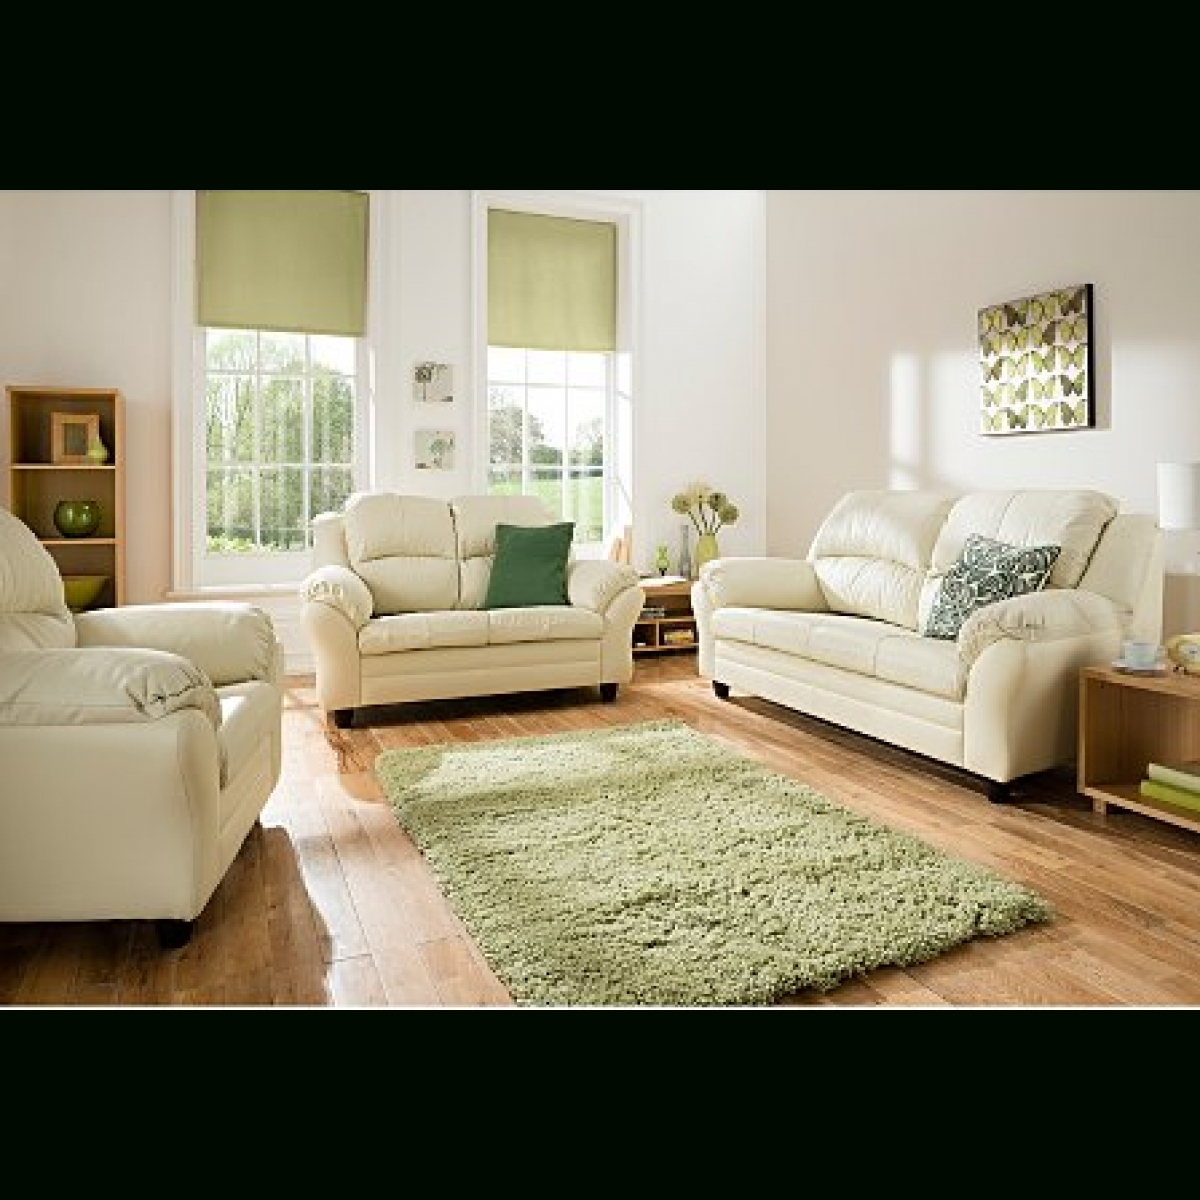 Hereford Large Leather Sofa And Two Chair's Ivory - Furnico Village regarding Ivory Leather Sofas (Image 14 of 30)